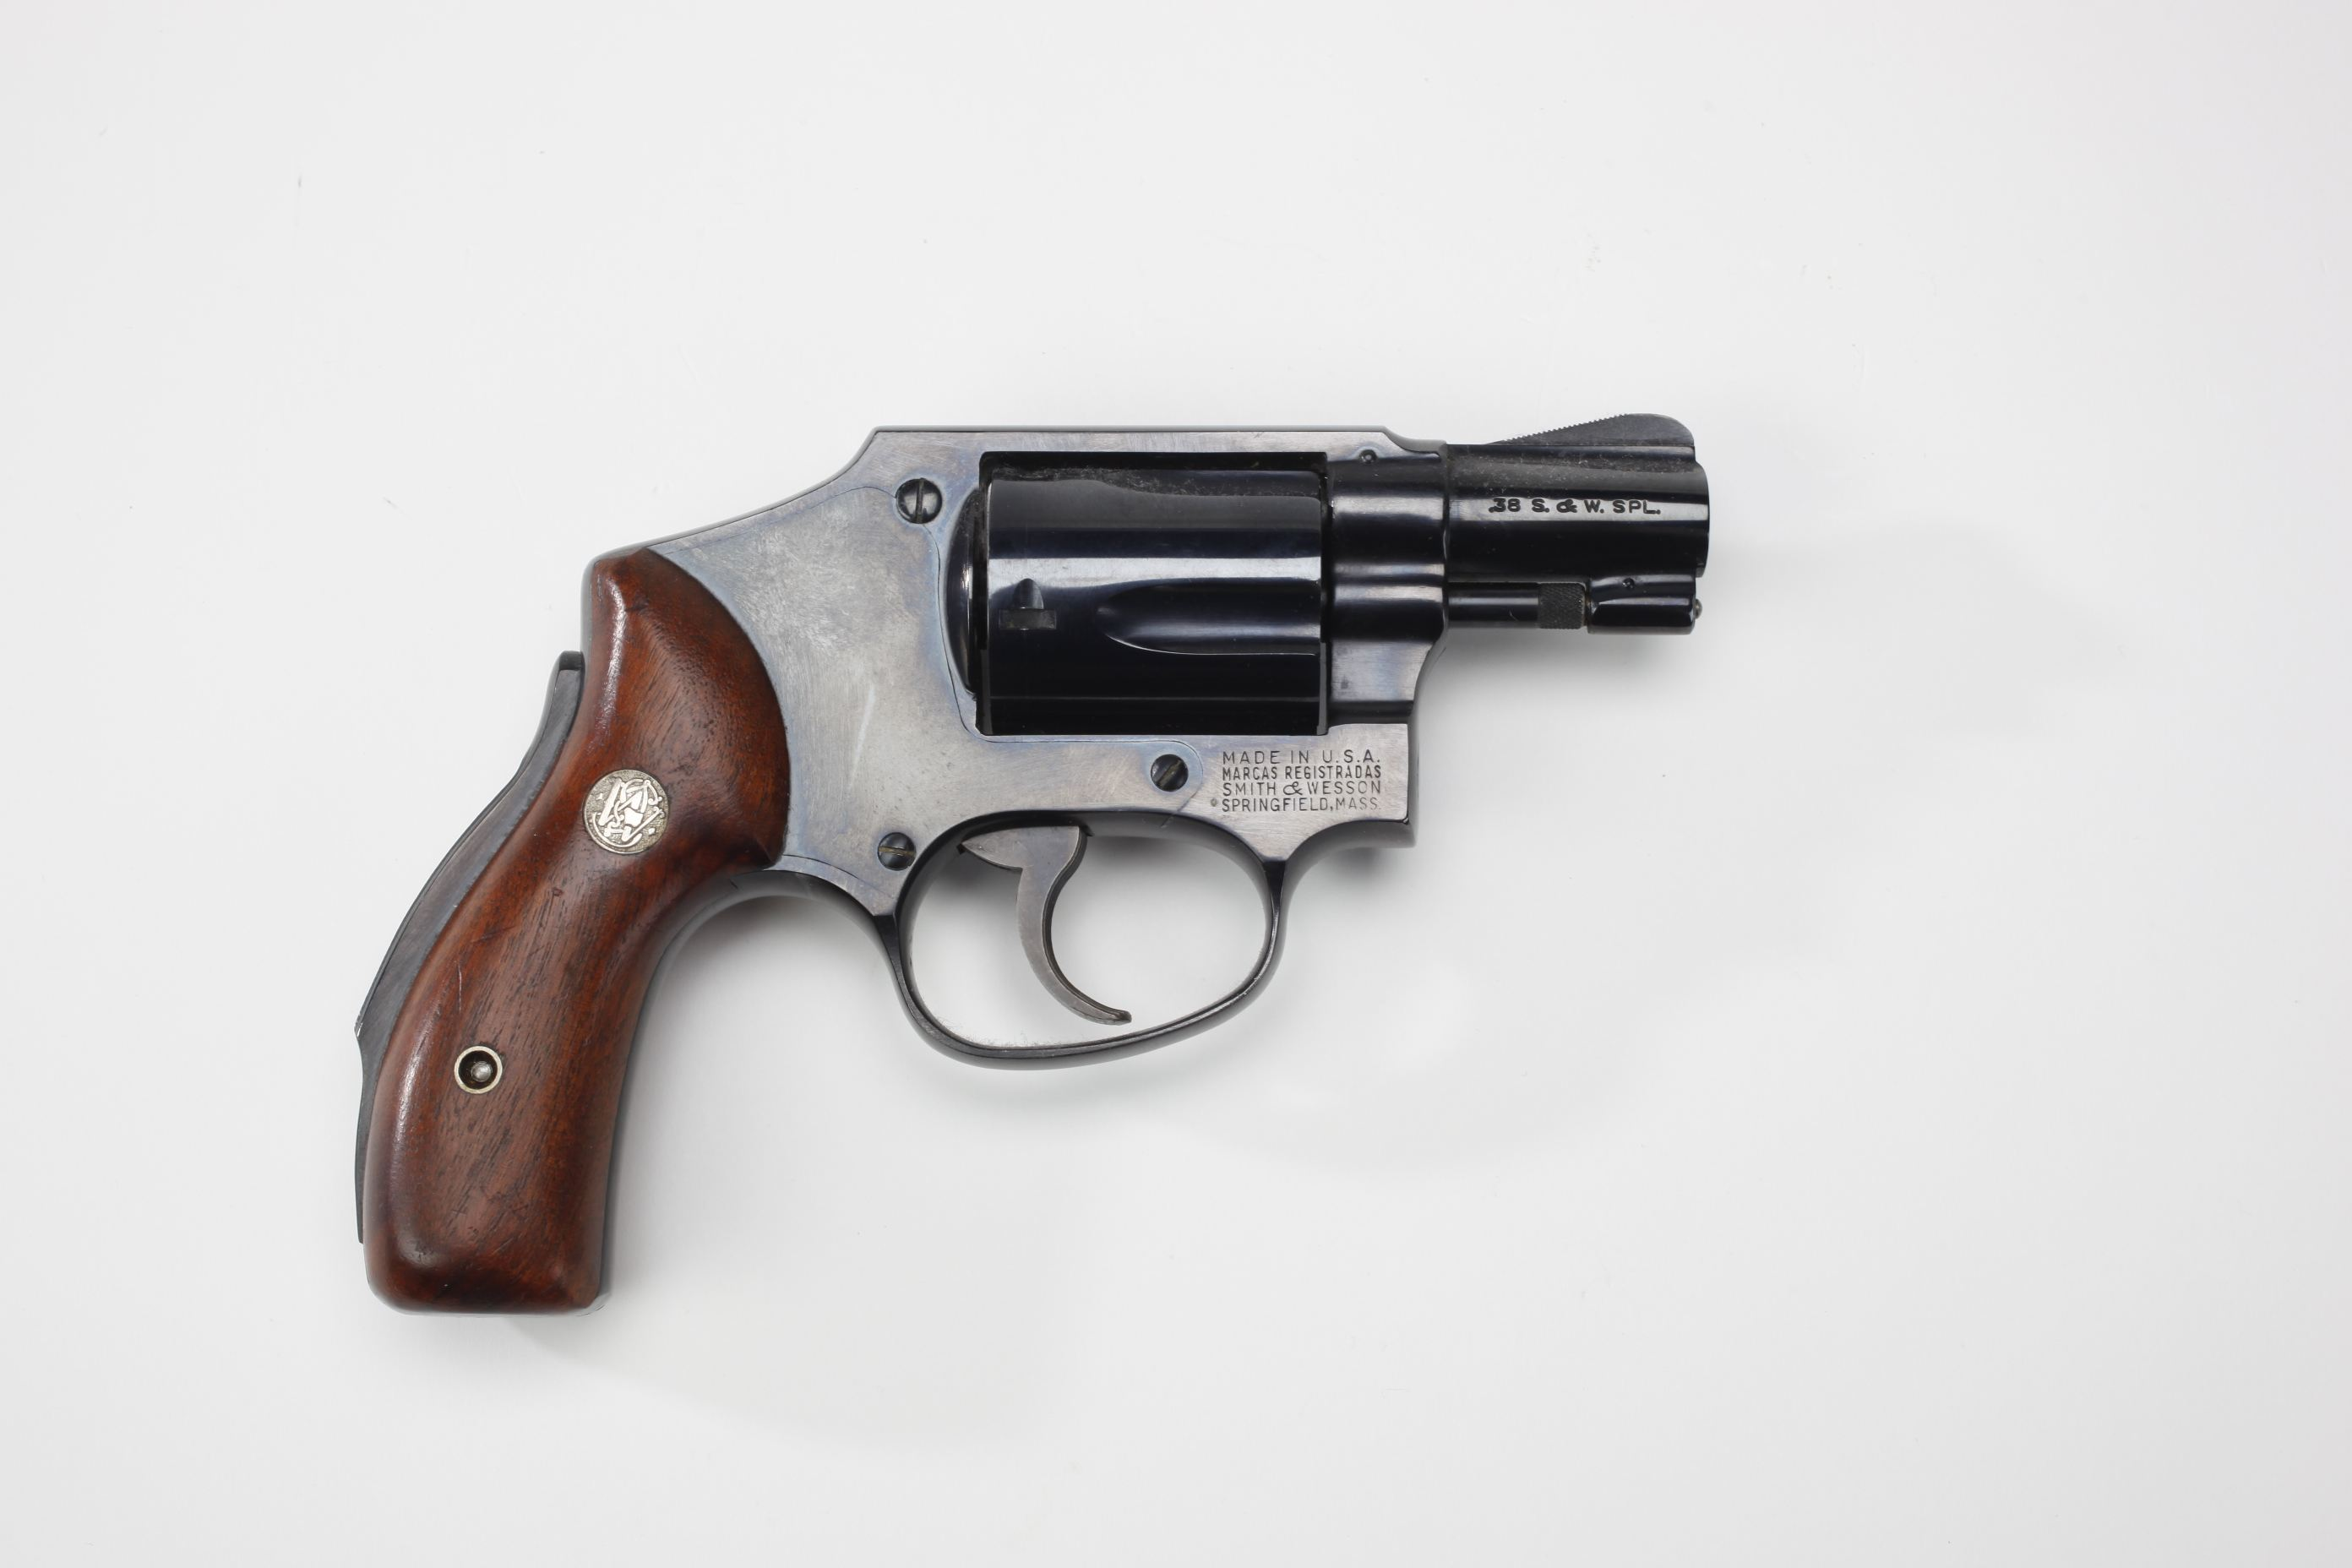 Smith & Wesson Centennial Model 40 revolver